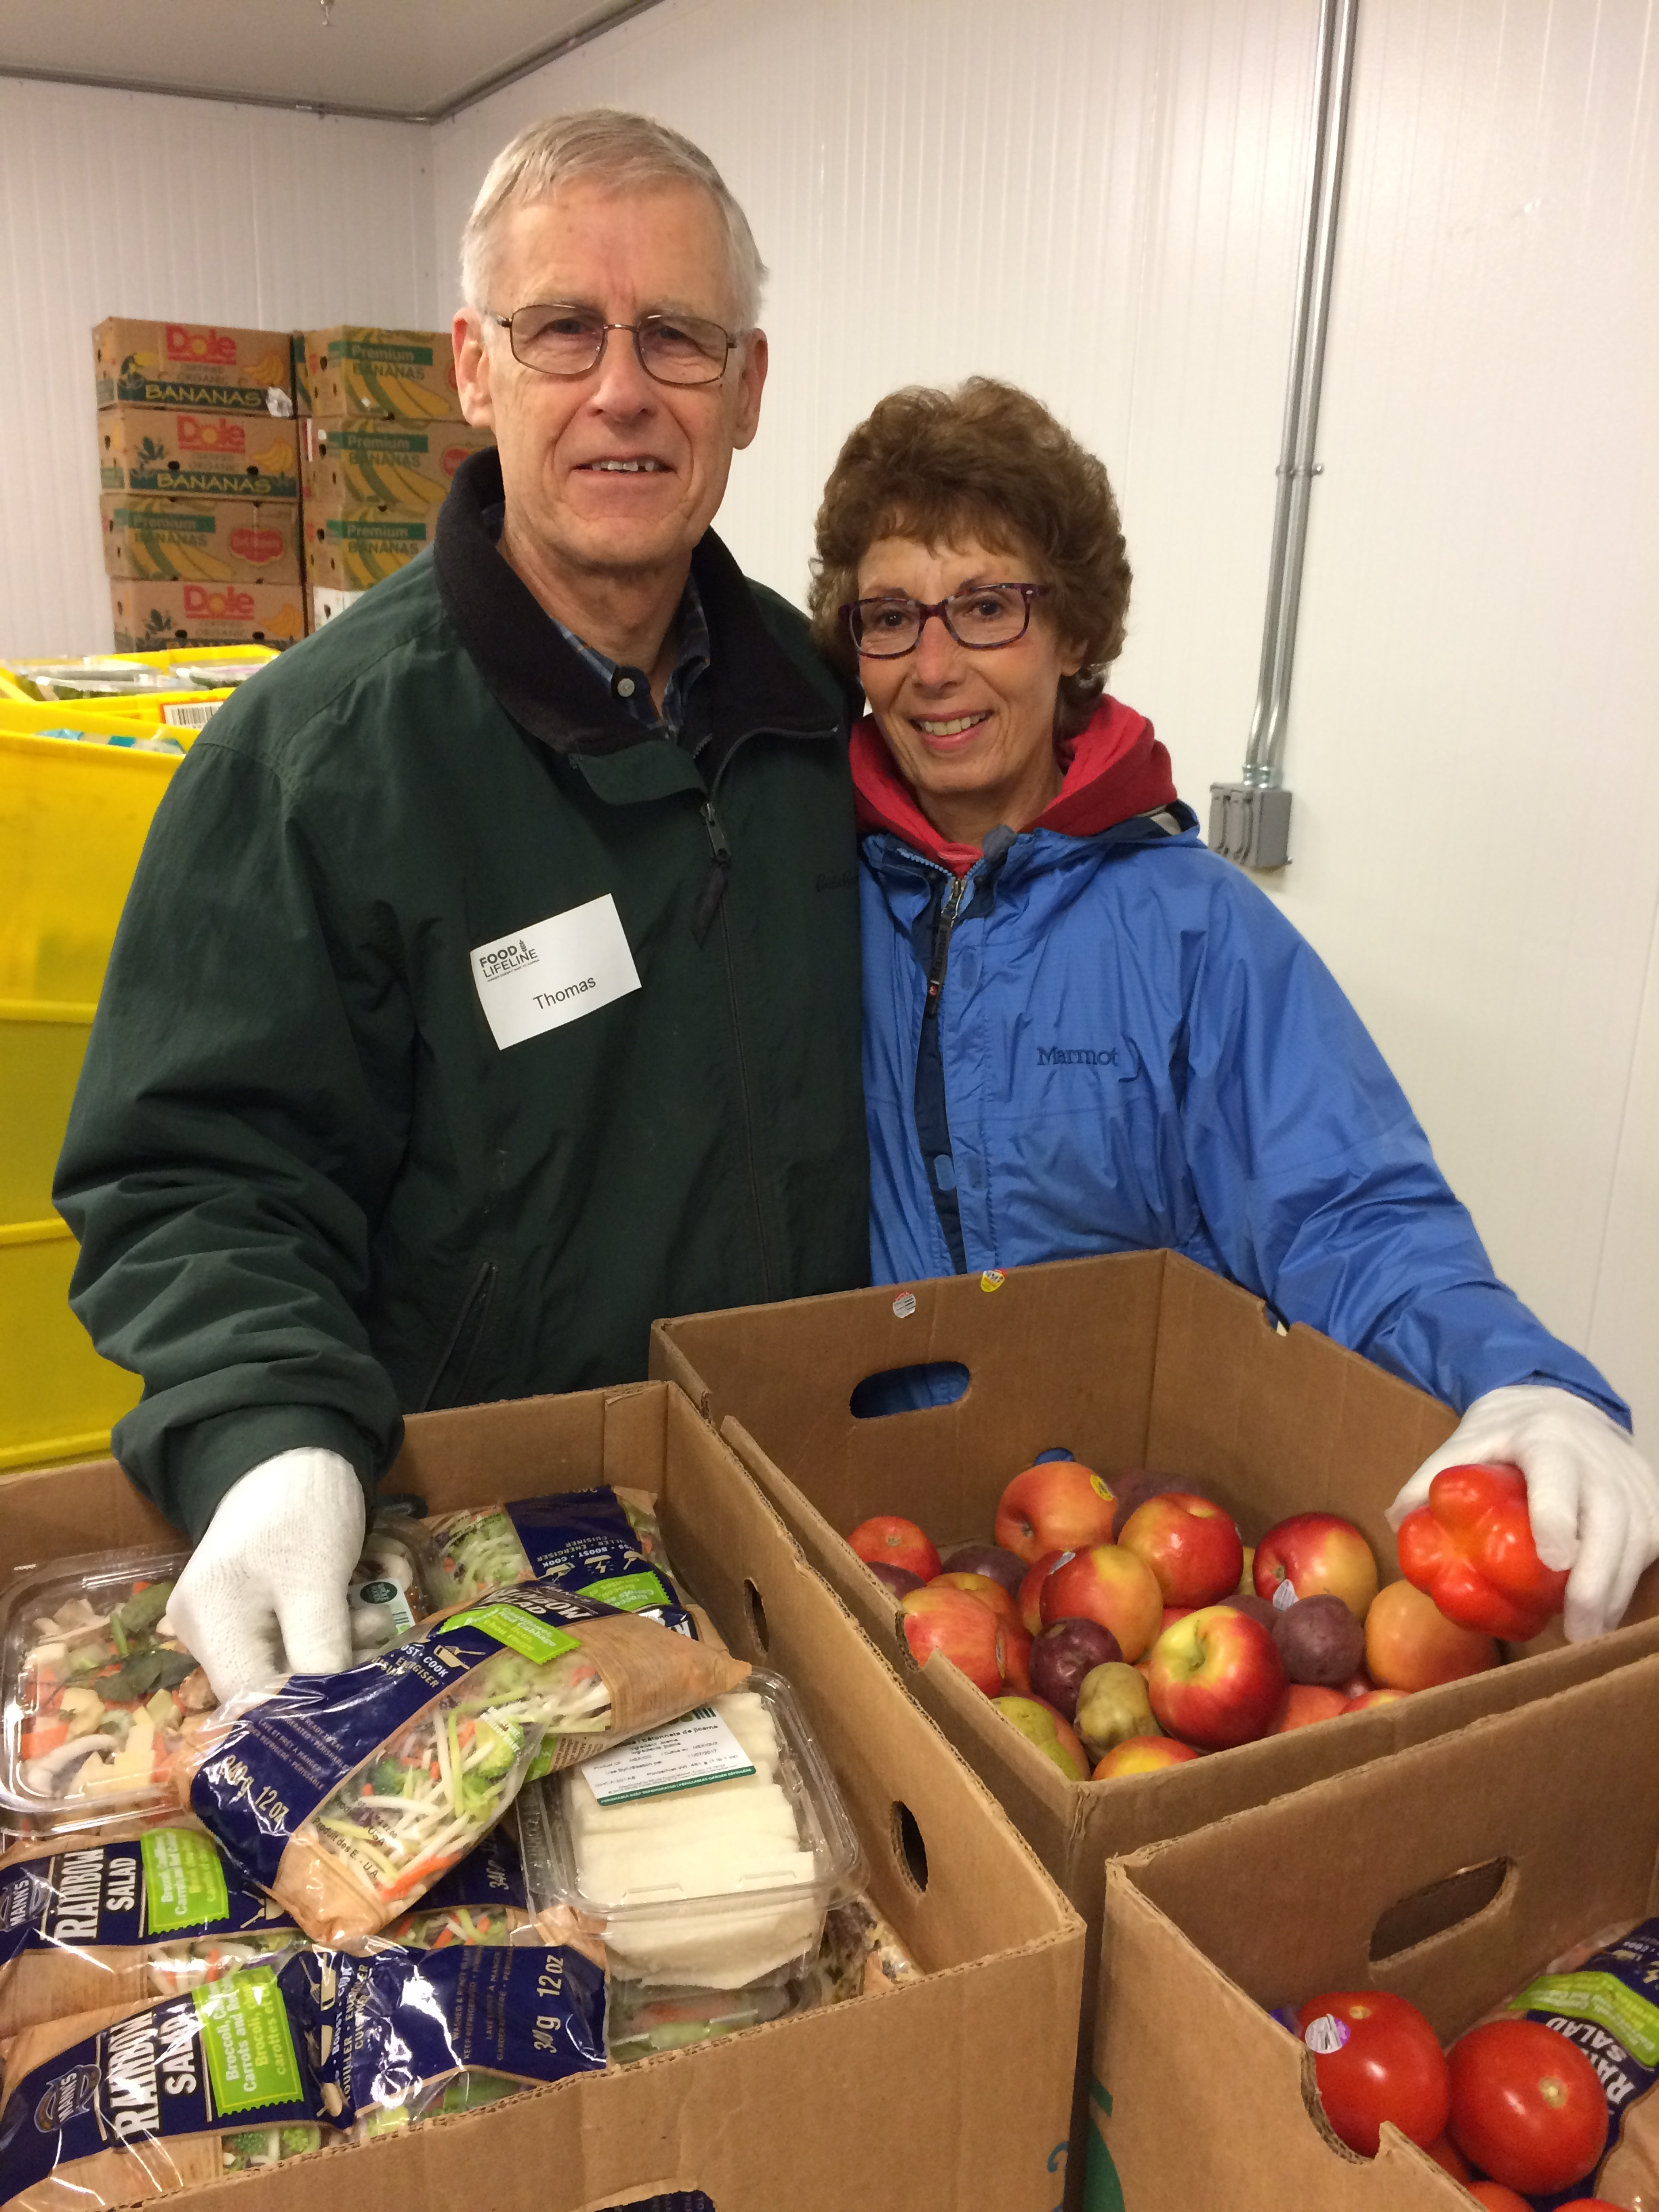 Two people, a man and a woman, smiling at the camera while sorting food